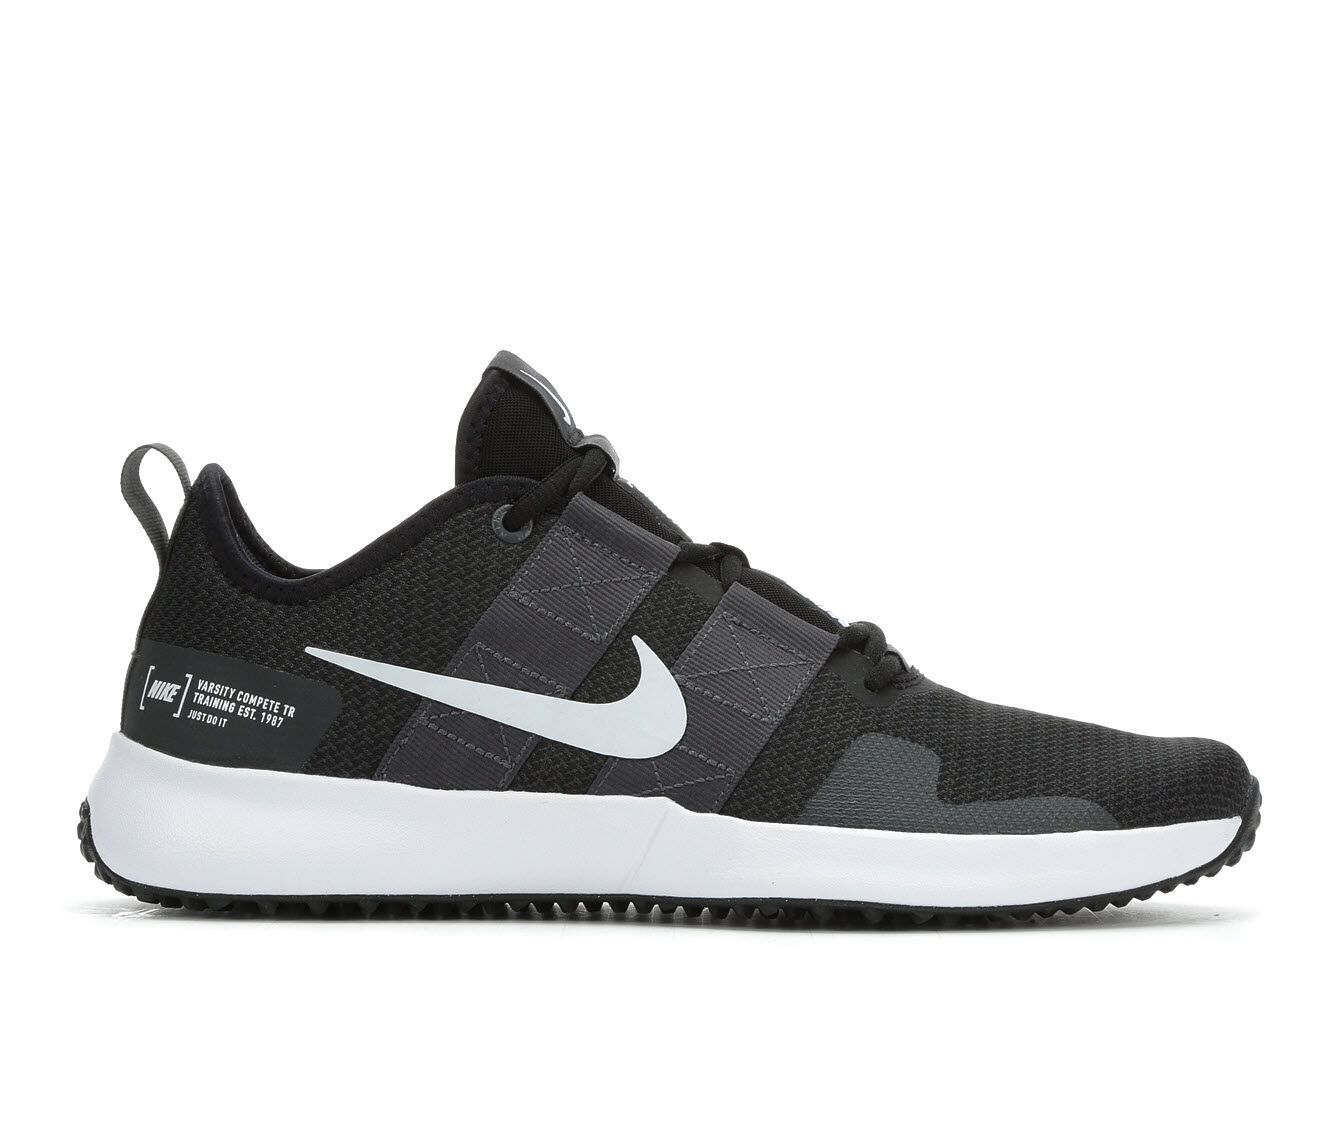 Men's Nike Varsity Compete TR 2 Training Shoes Blk/Gry/Wht